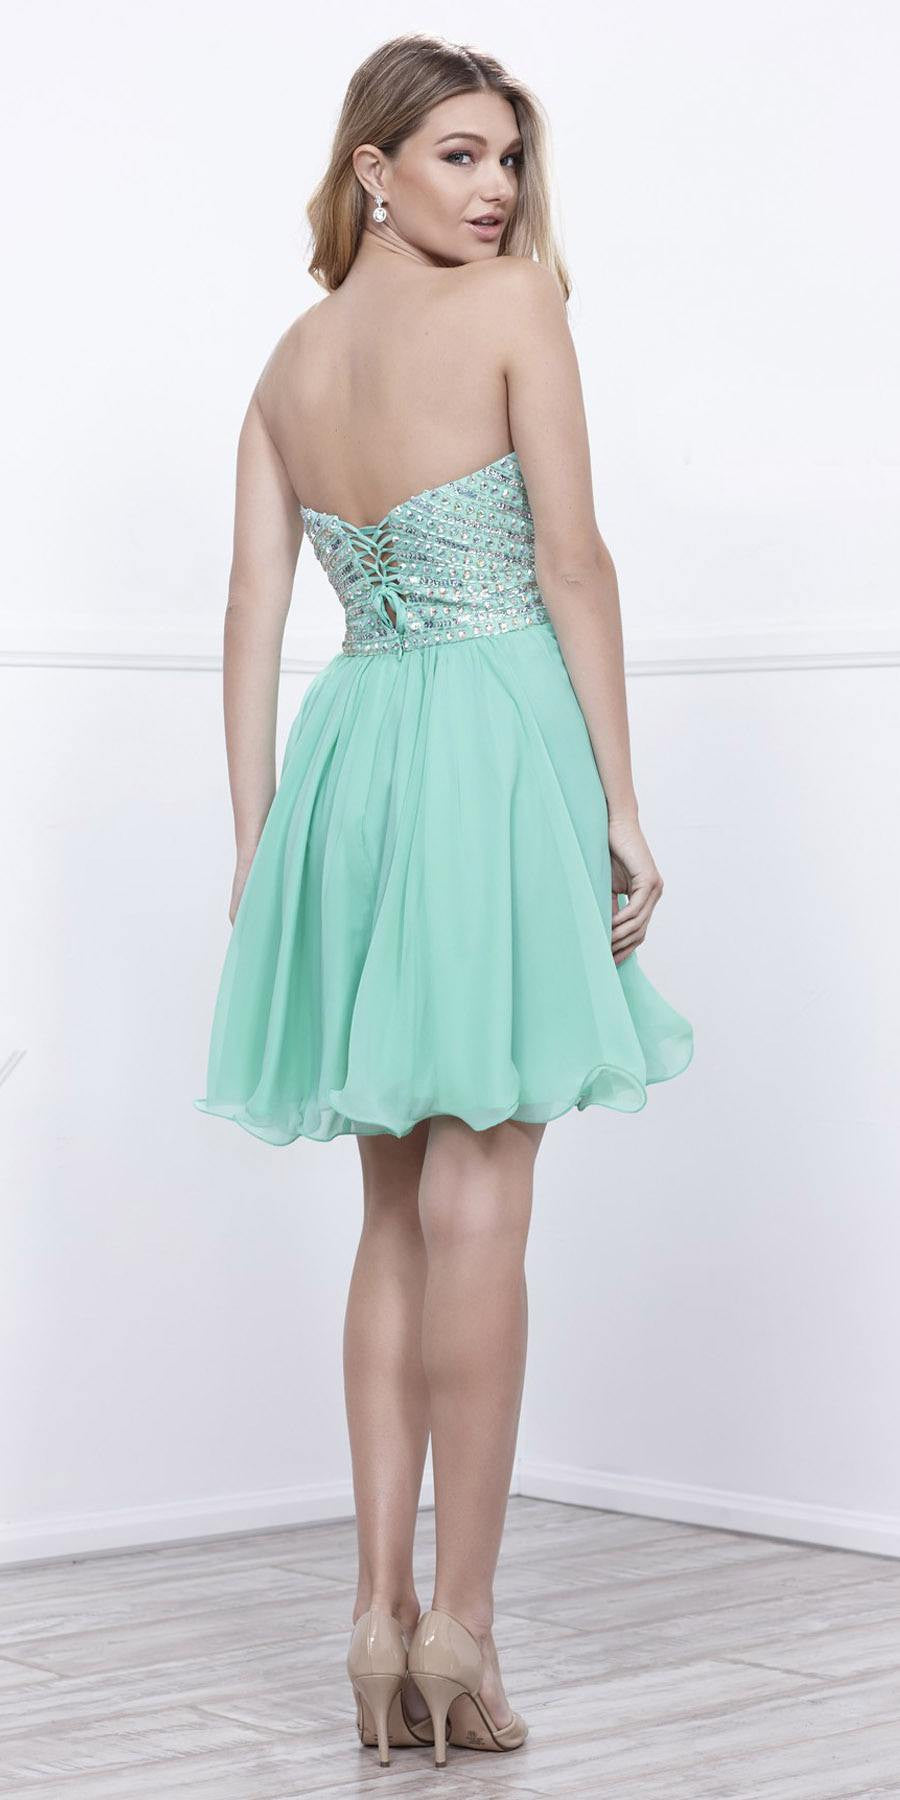 Short Strapless Homecoming Dress Sweetheart Neckline Royal Blue ...